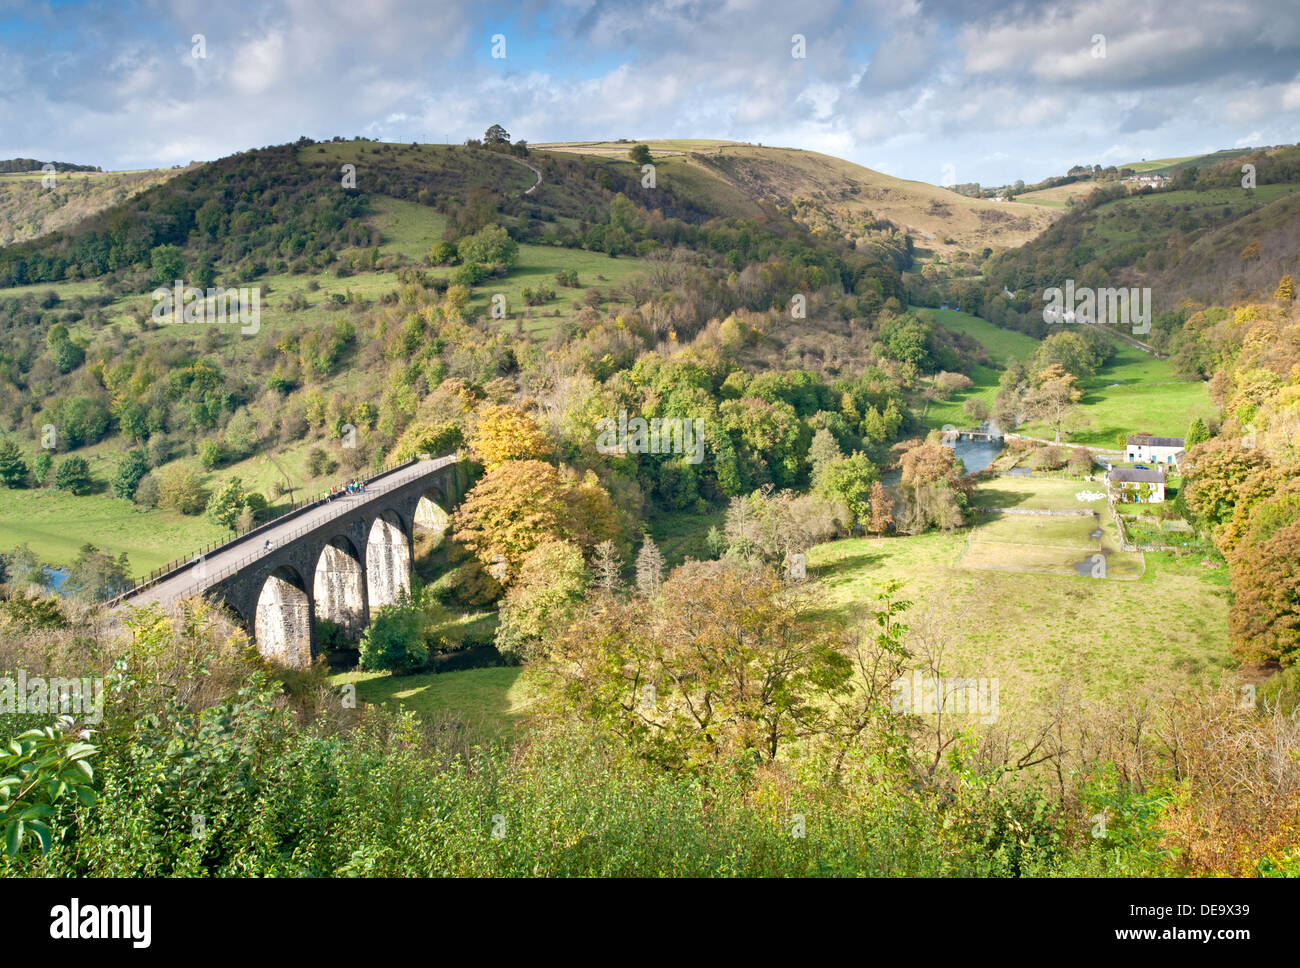 Monsal Dale and Headstone Viaduct, Peak District National Park, Derbyshire, England, UK - Stock Image